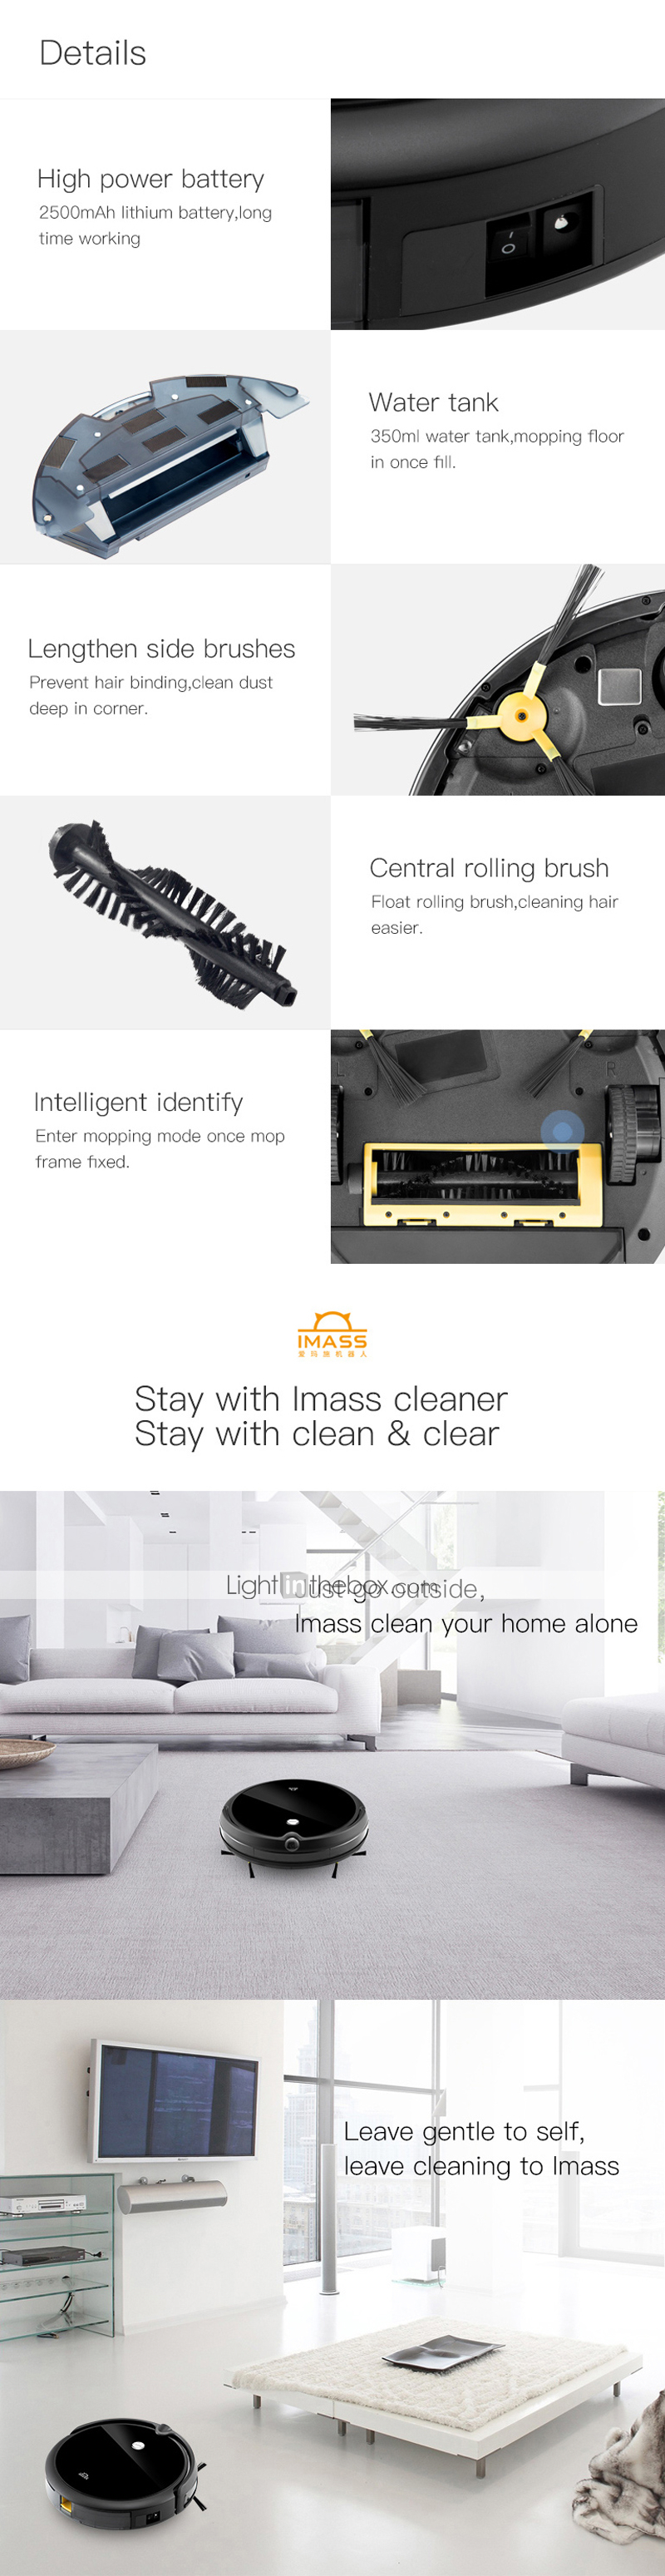 Robot Vacuum A3SWet Dry Mopping Remote Control Self Recharging Schedule Cleaning